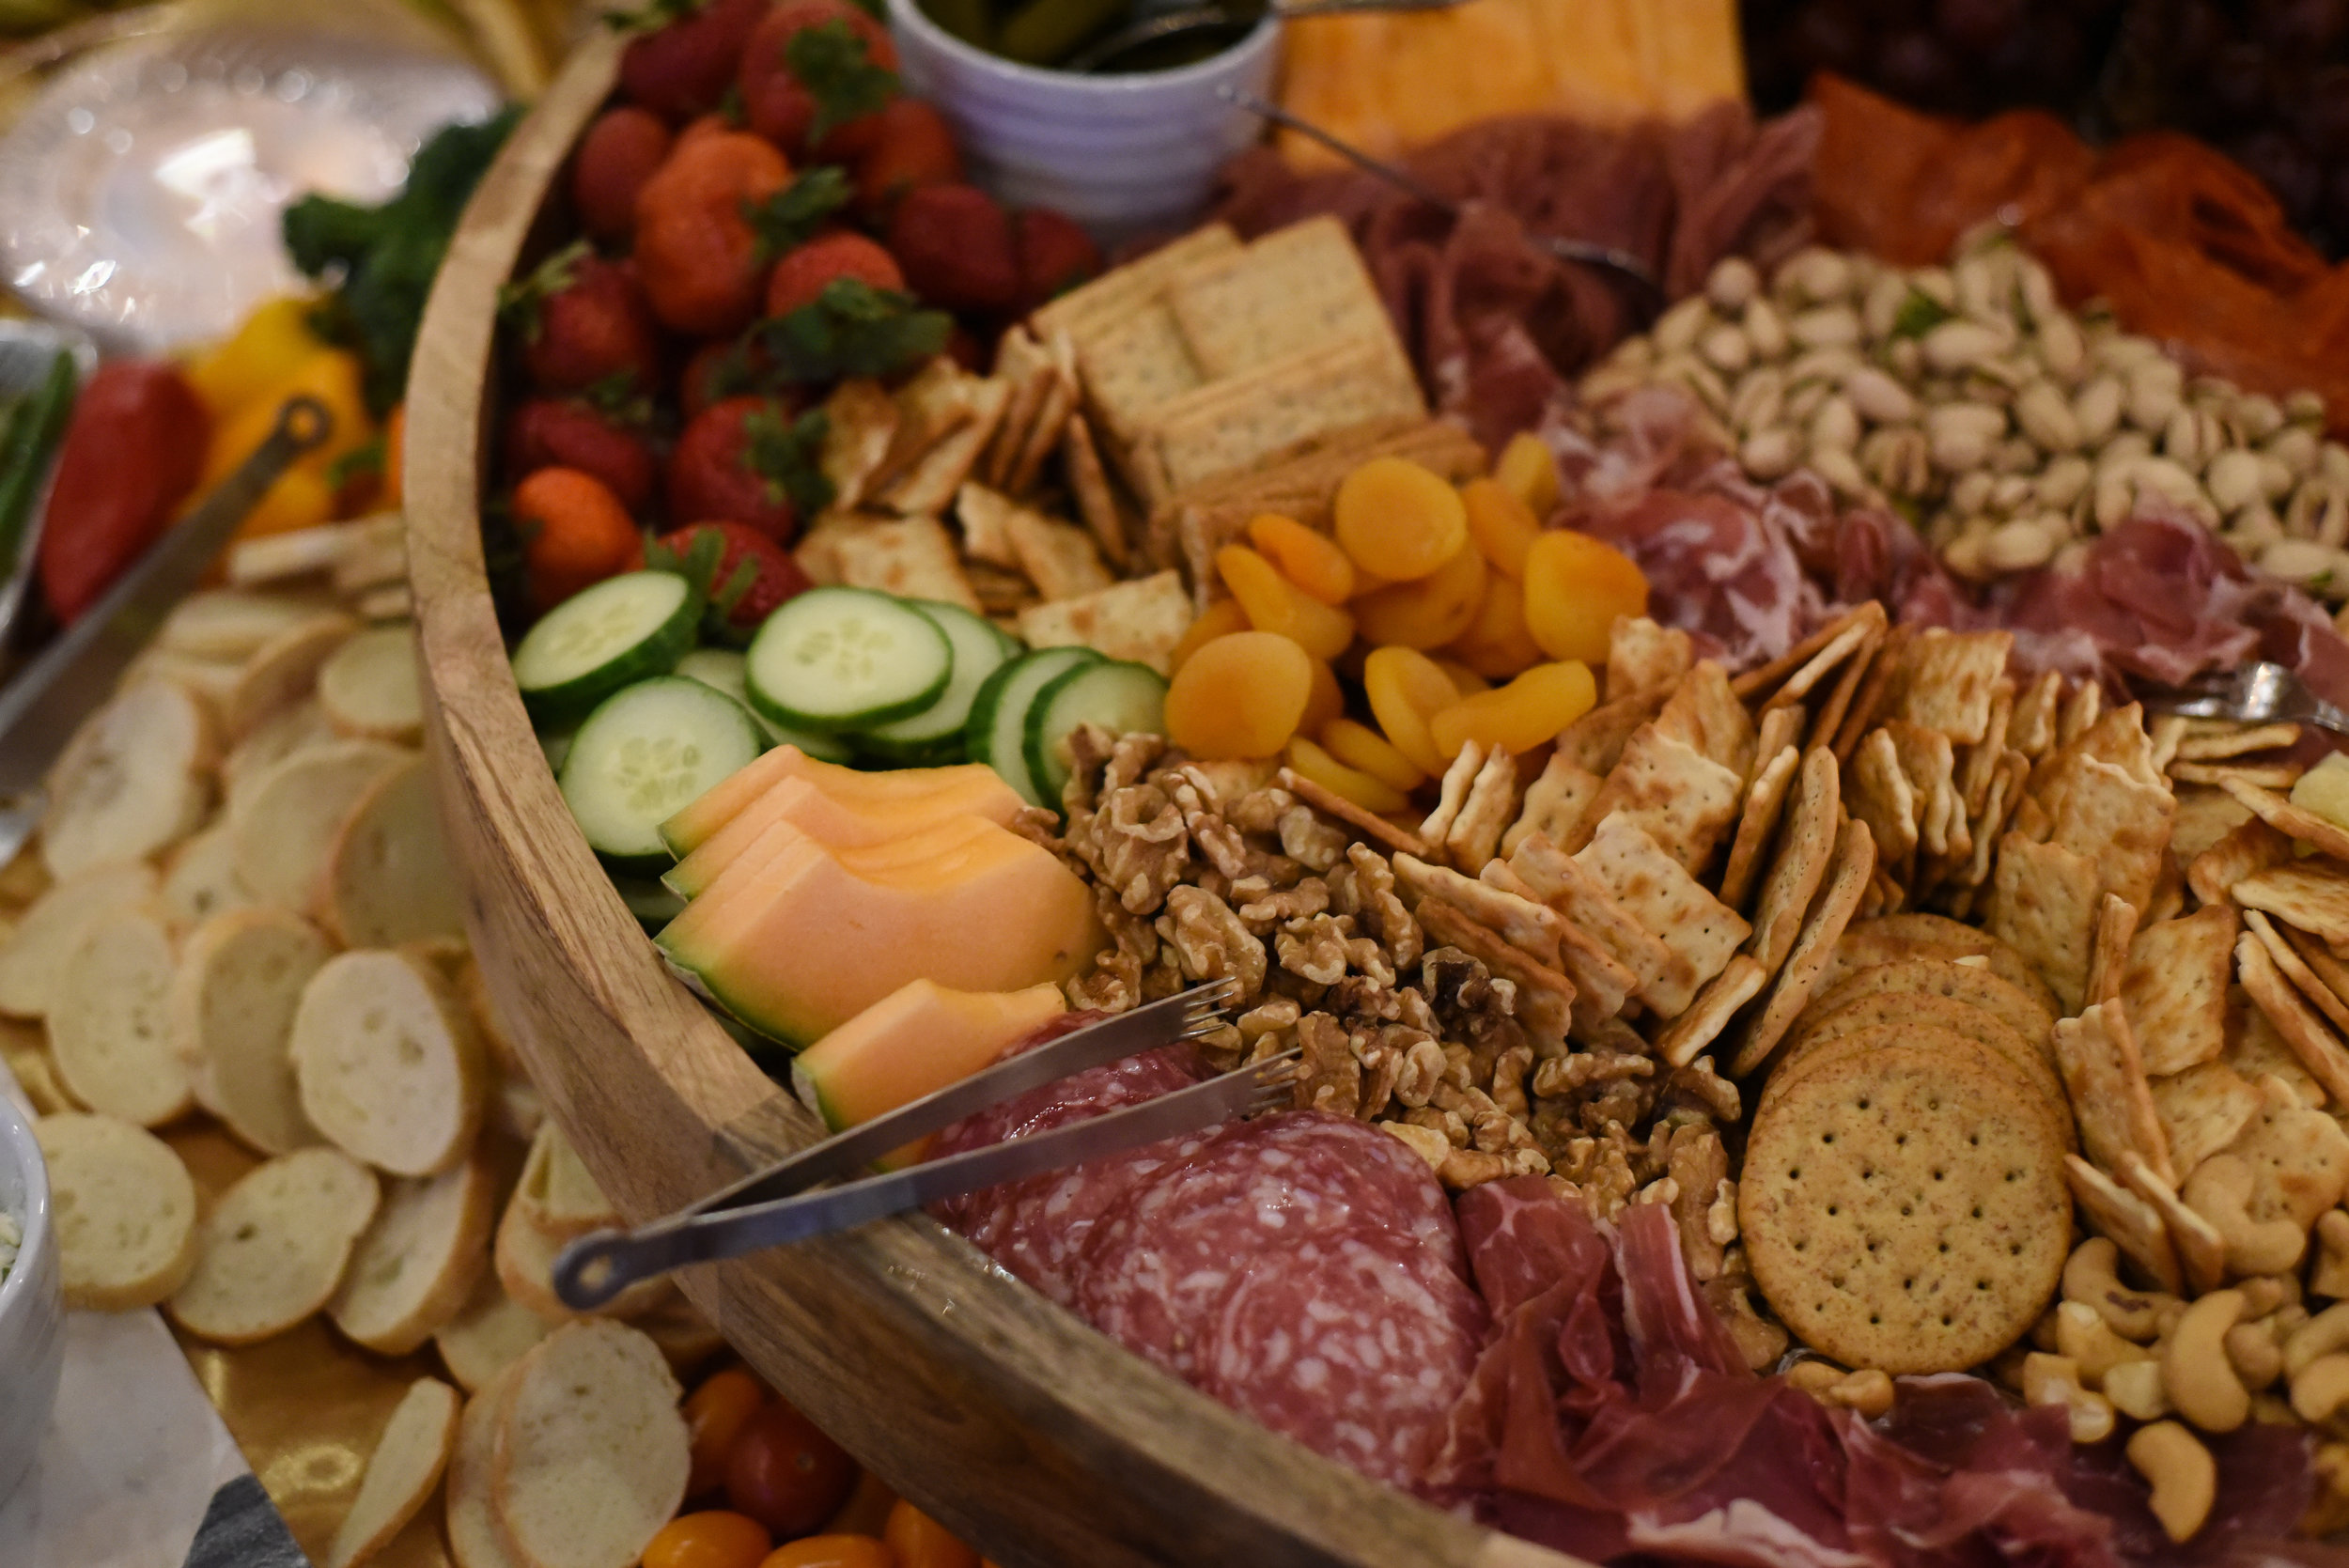 Charcuterie by Gigi's Creations; Photo by Sonder Photography